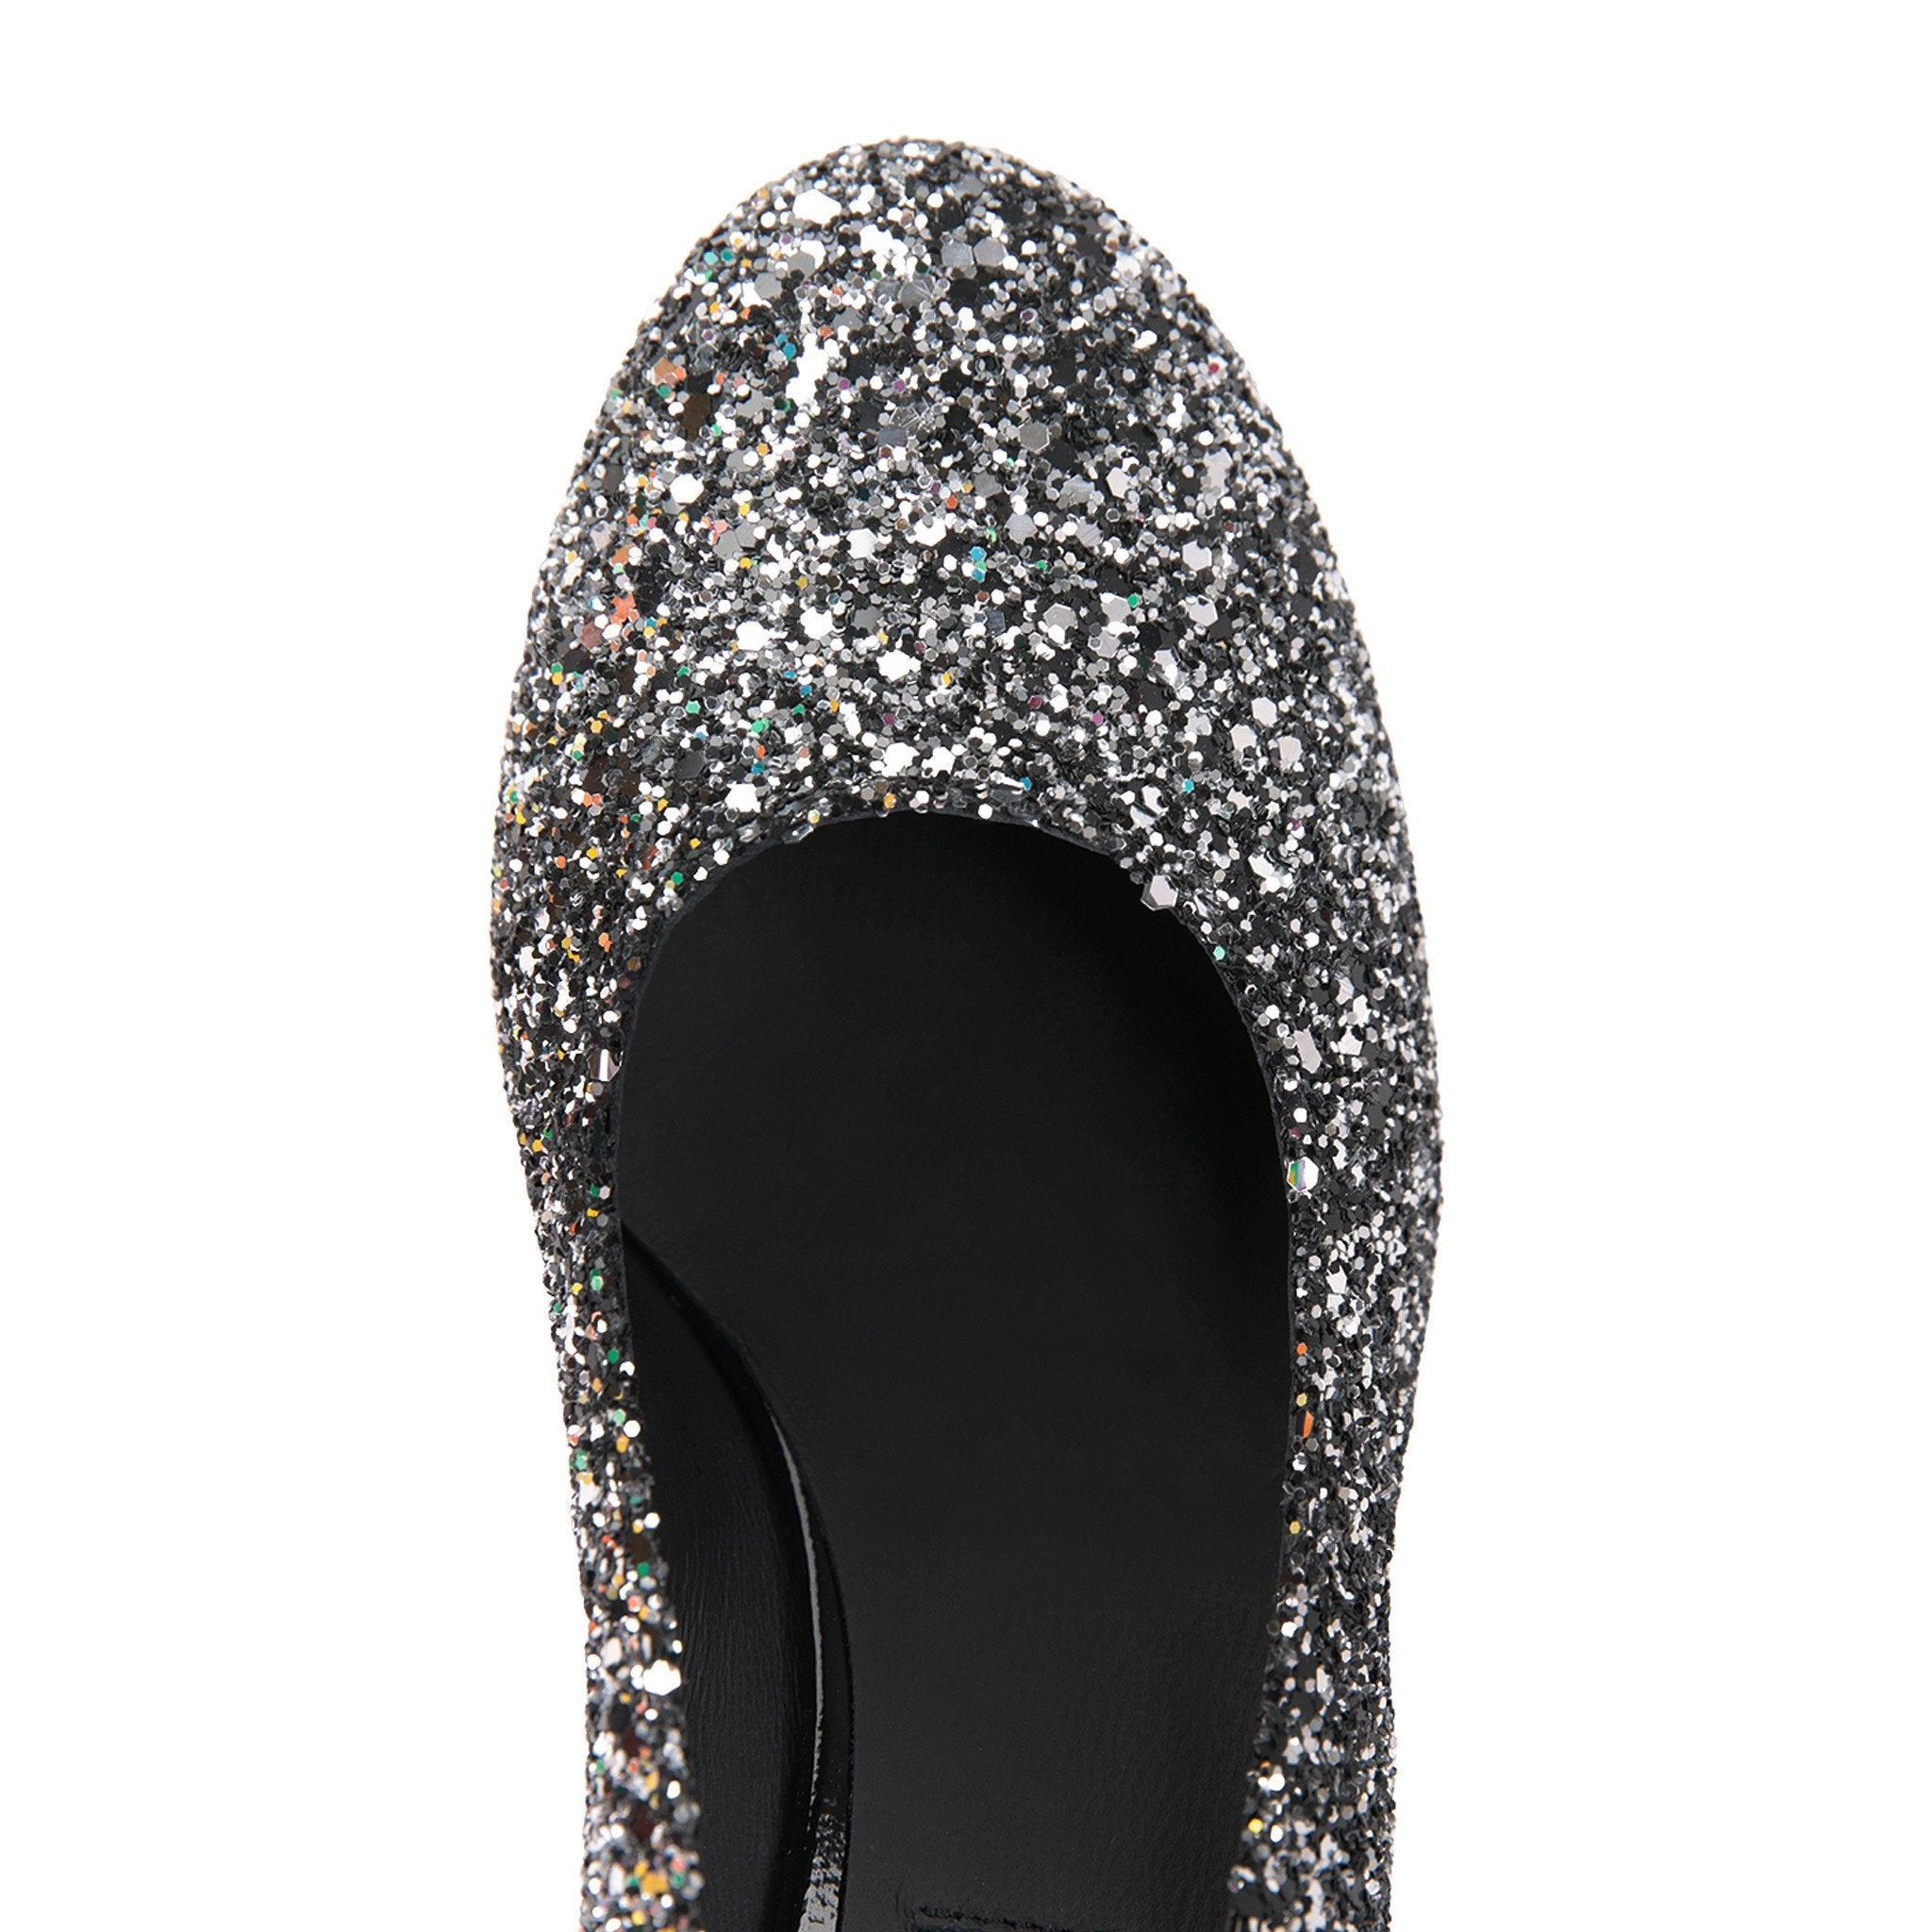 BERGAMO - Glitter Notte + Patent Nero, VIAJIYU - Women's Hand Made Sustainable Luxury Shoes. Made in Italy. Made to Order.